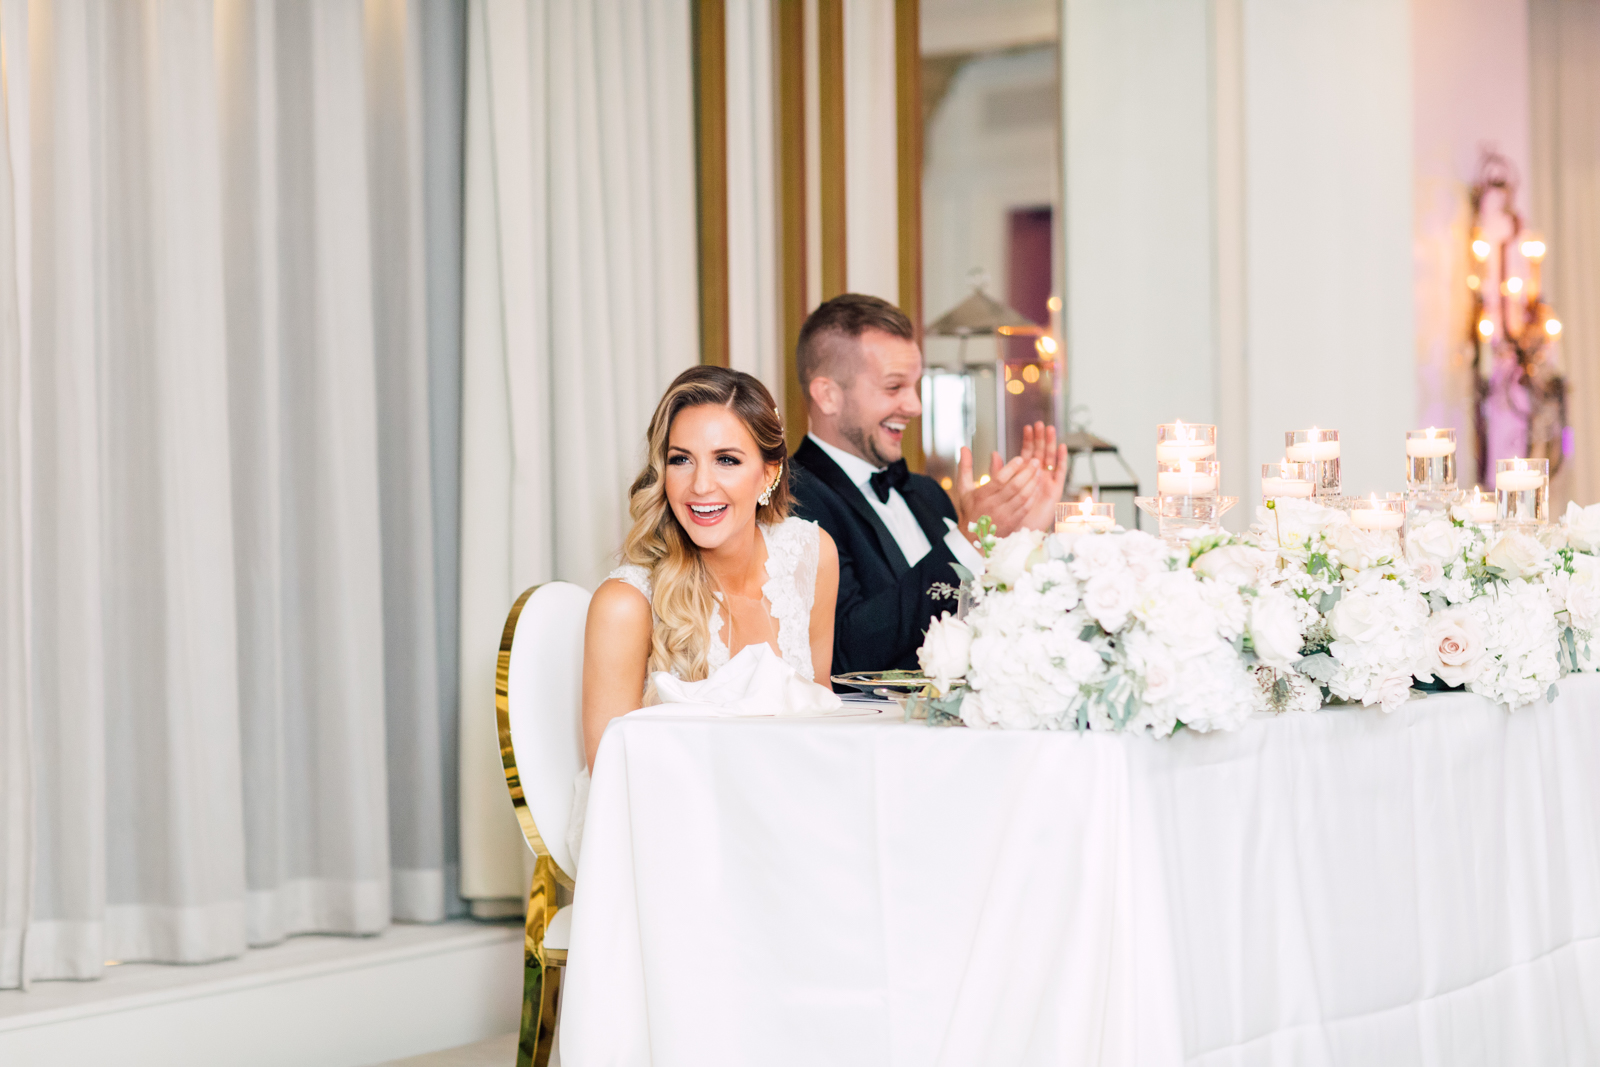 Sweetheart table wedding